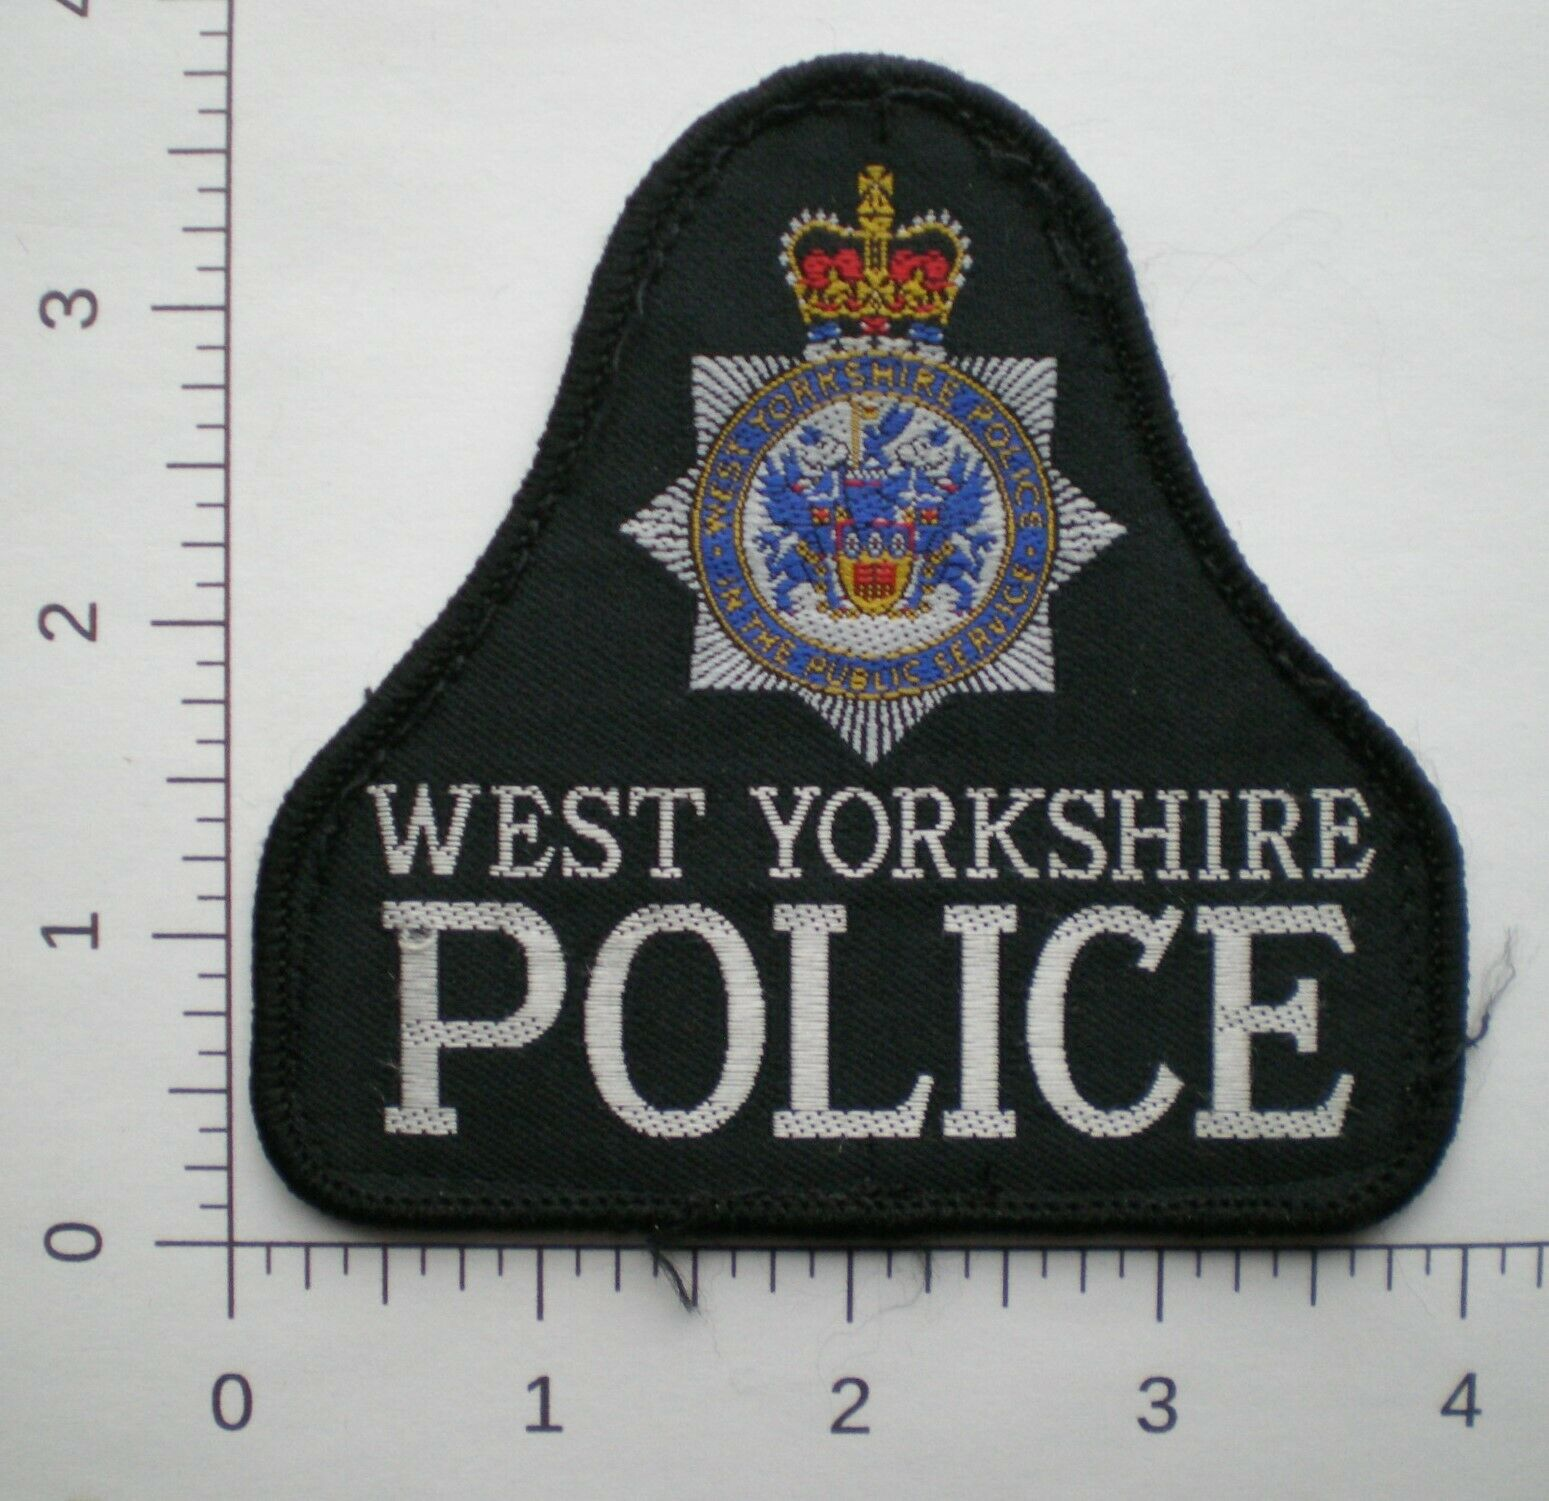 UK United Kingdom Britain West Yorkshire Constabulary Police British Patch - $5.99